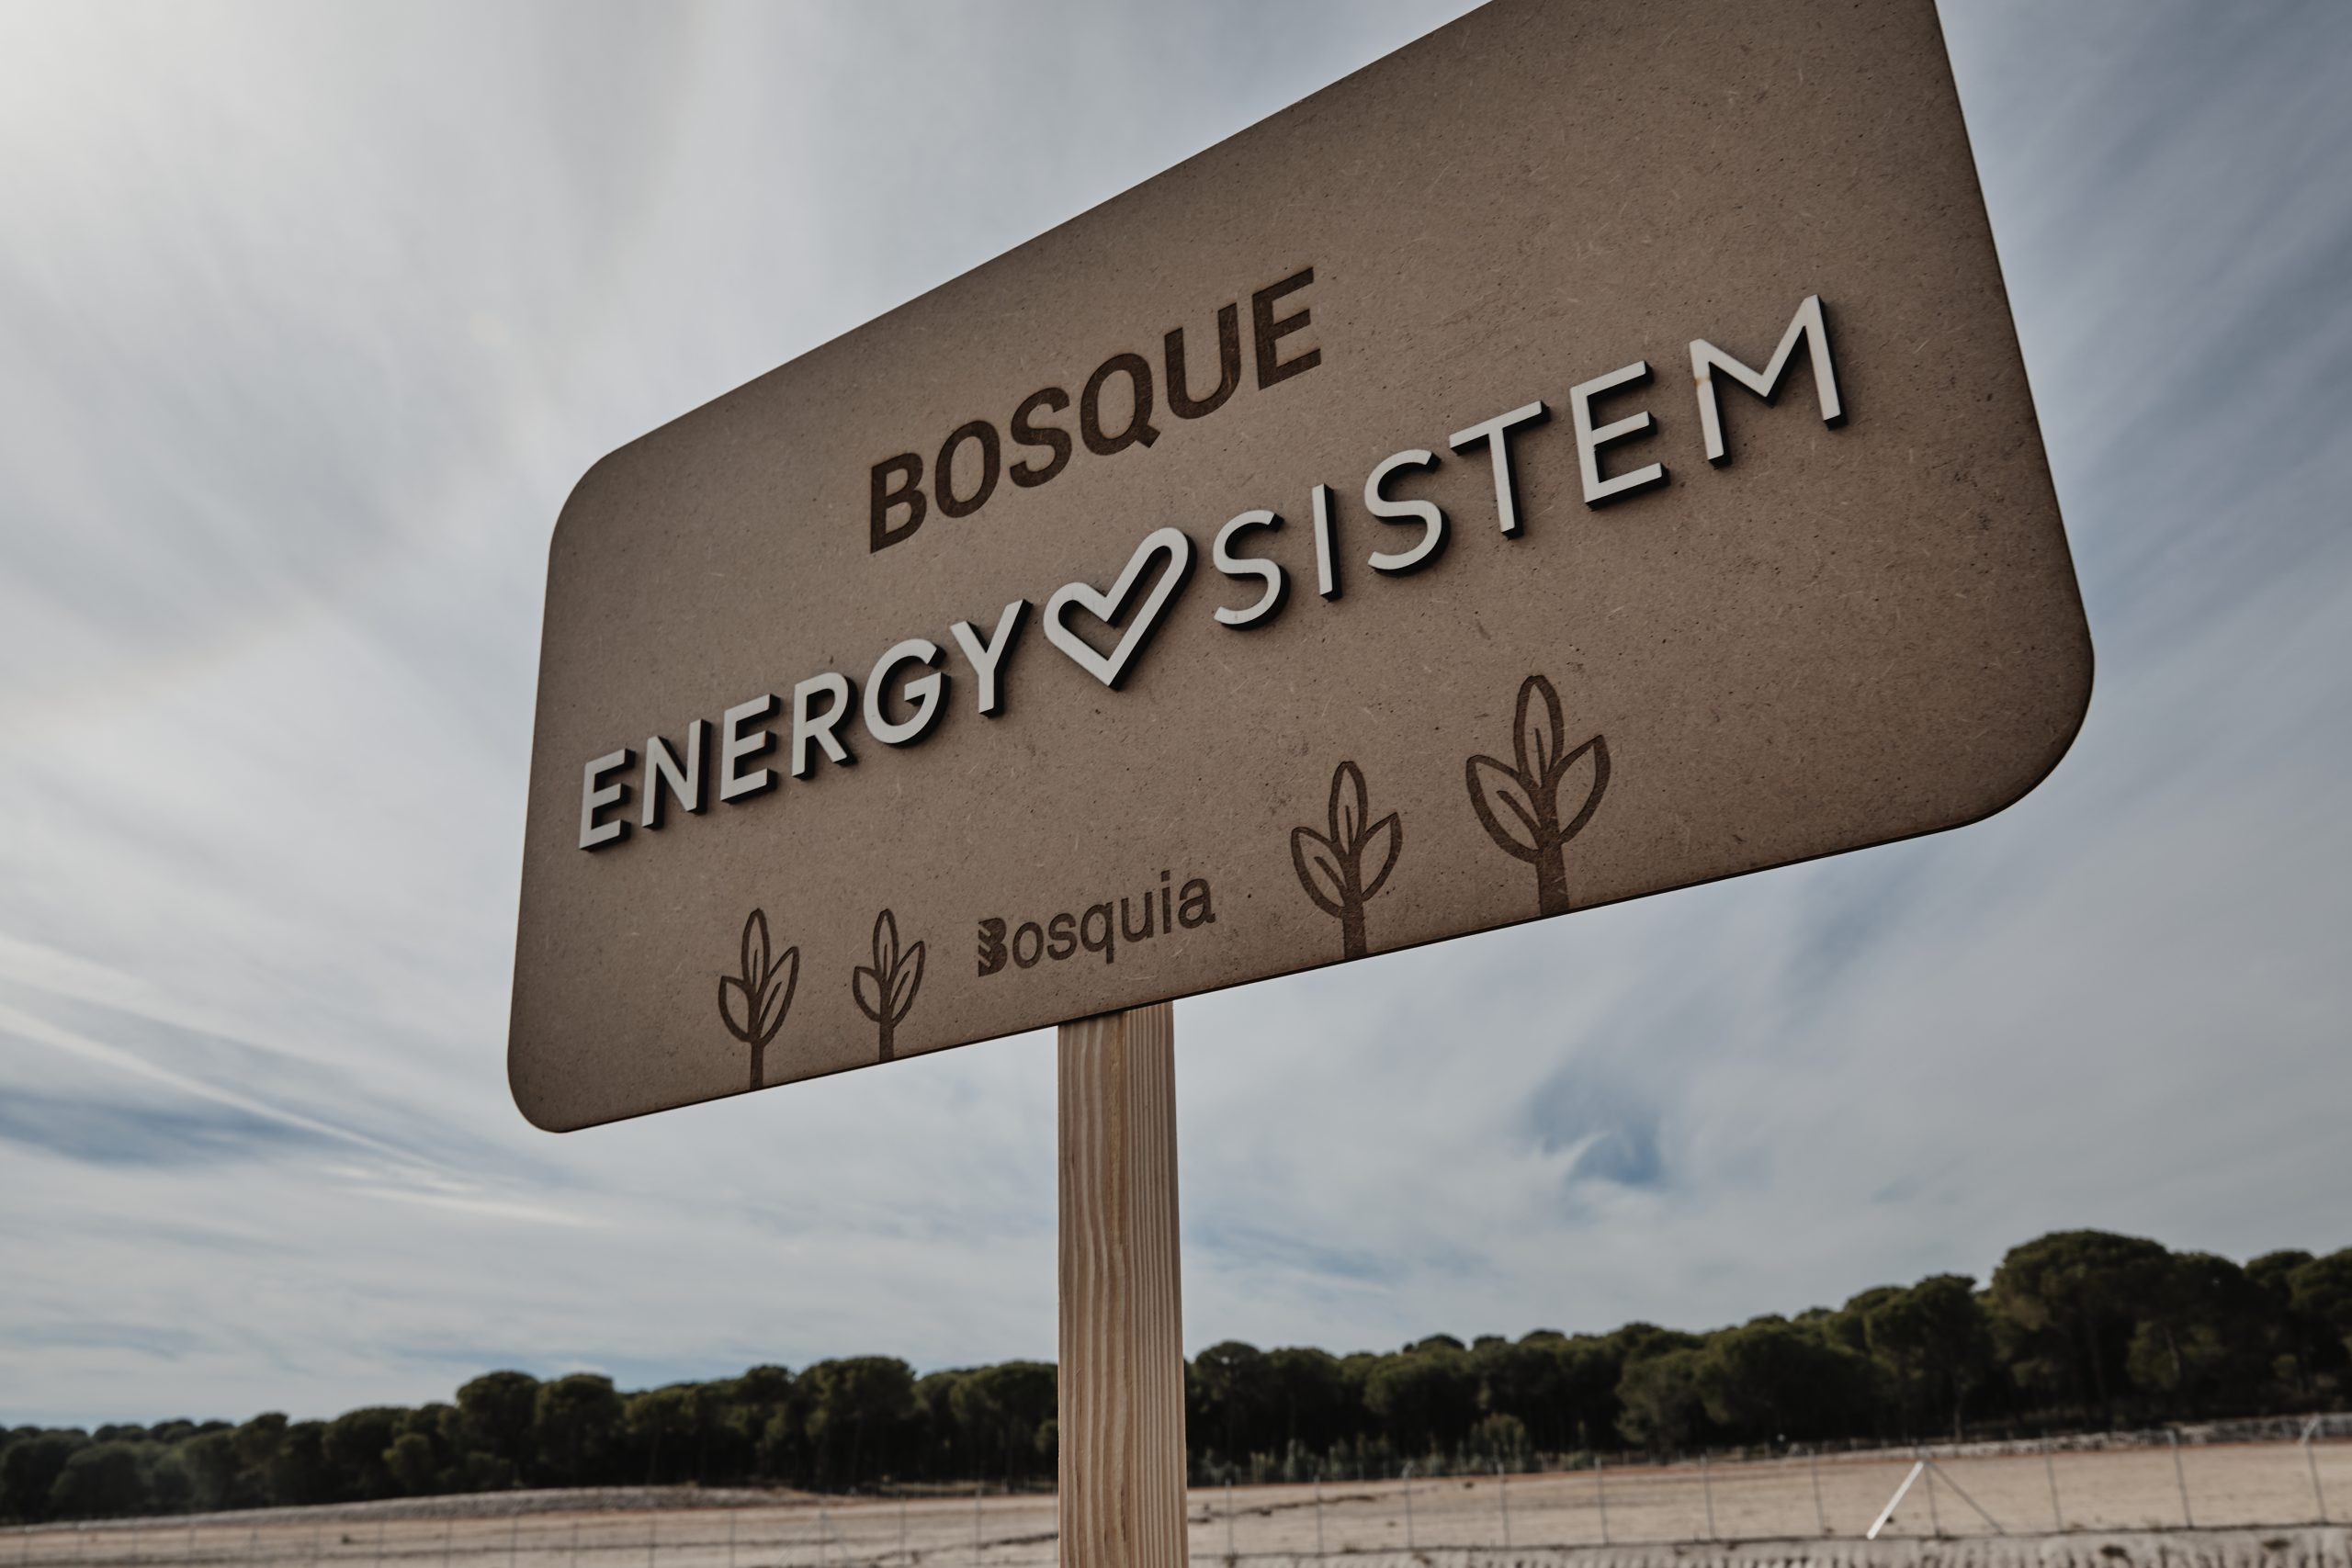 Bosque Energy Sistem